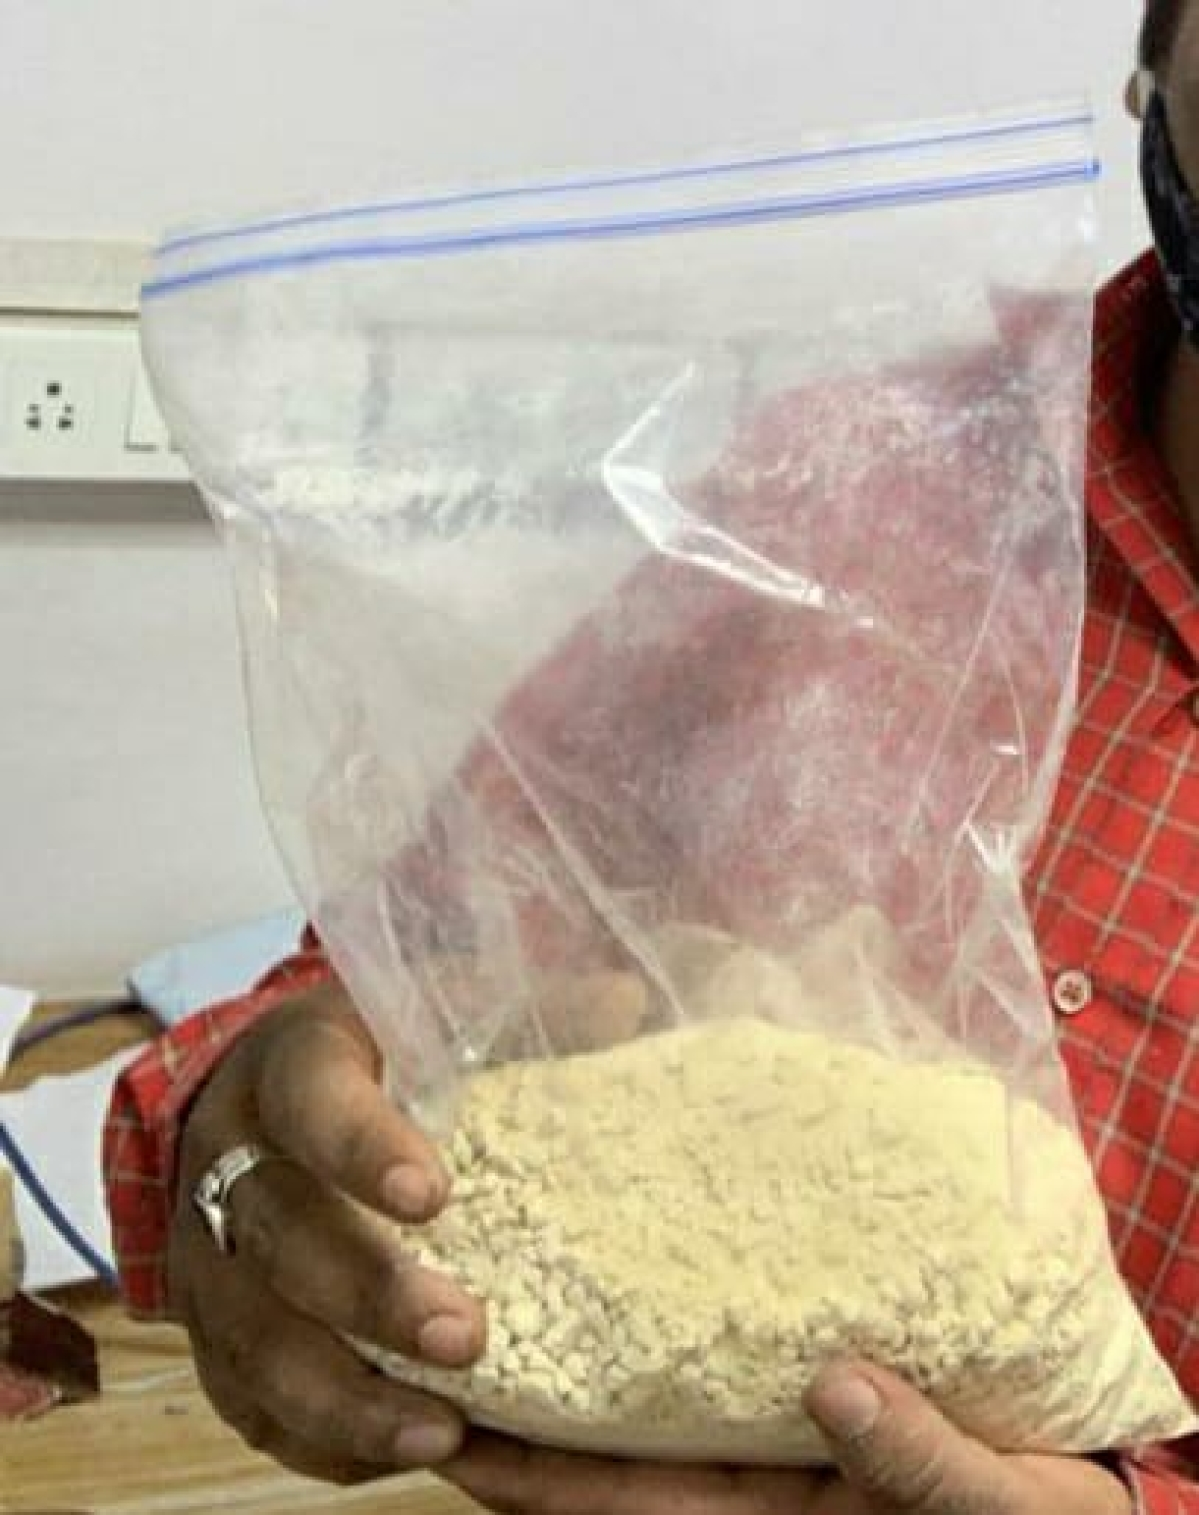 Mumbai: DRI detects heroin worth Rs 1.50 crore in courier parcel